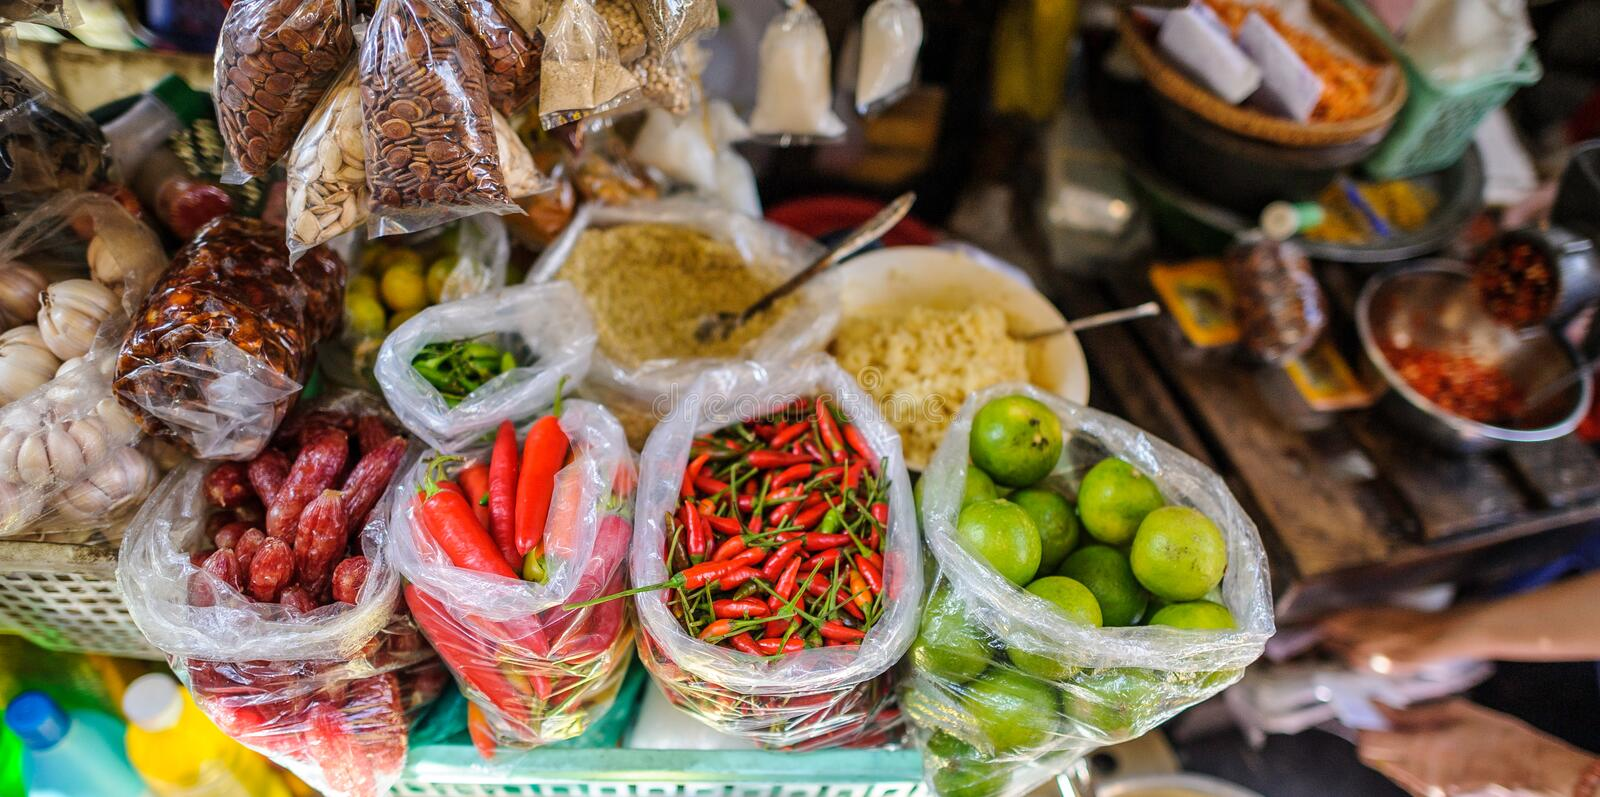 Food and spices in vietnam. Food ingredients and spices in vietnam food market royalty free stock photo